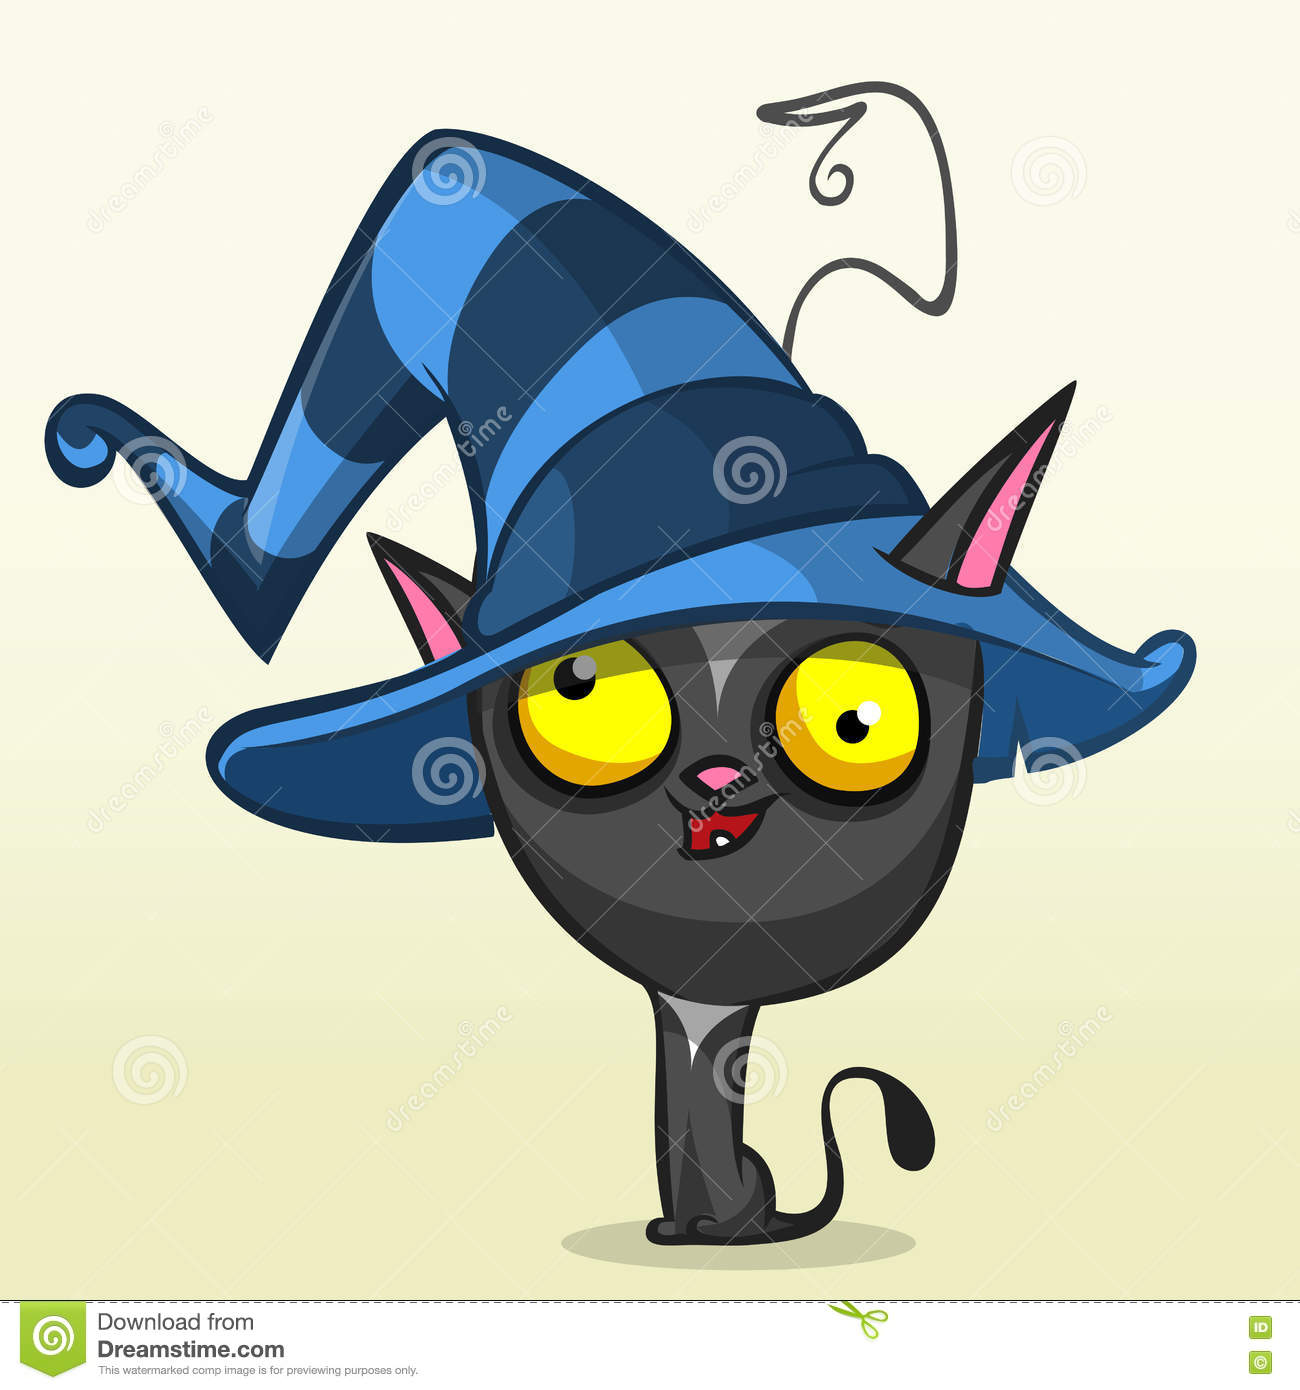 344e2fd8 Cartoon Halloween Black Cat In Witch Hat. Vector Illustration Stock ...